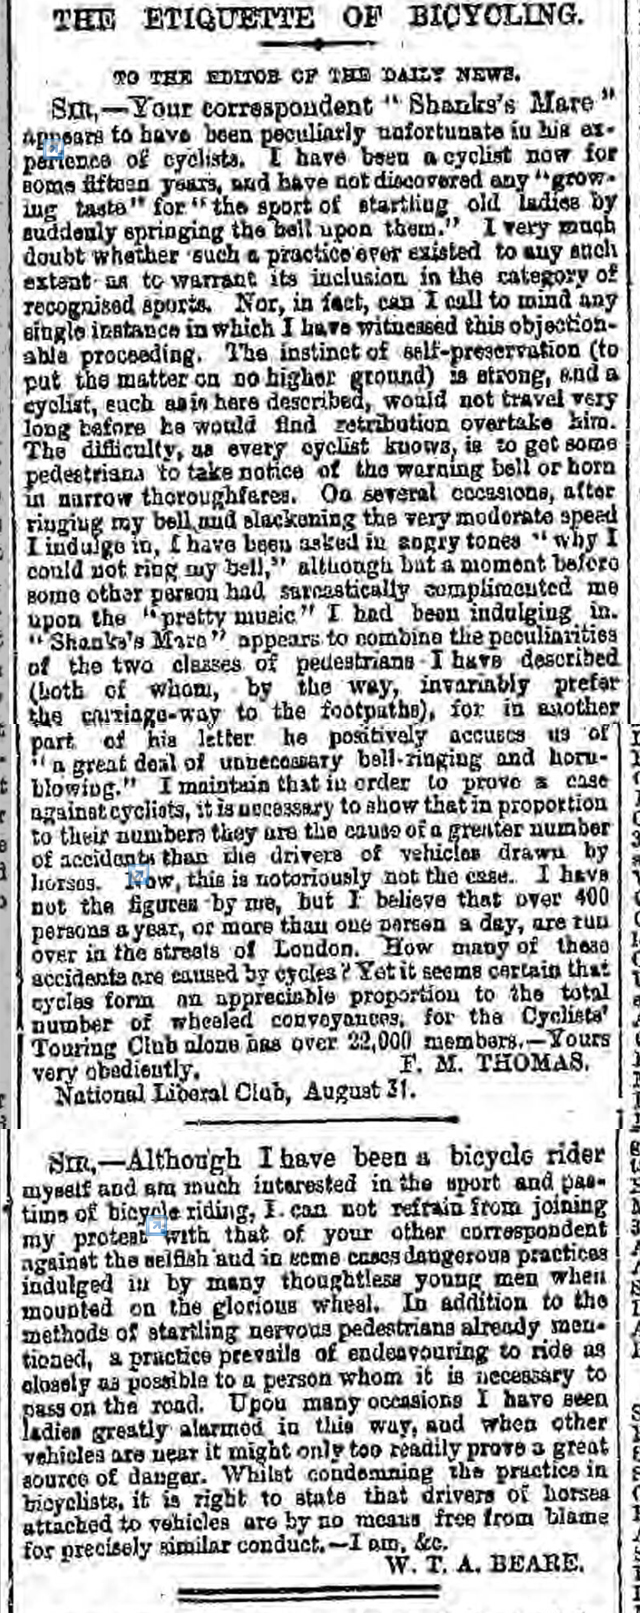 newspaper report on bicycle etiquette during the victorian age